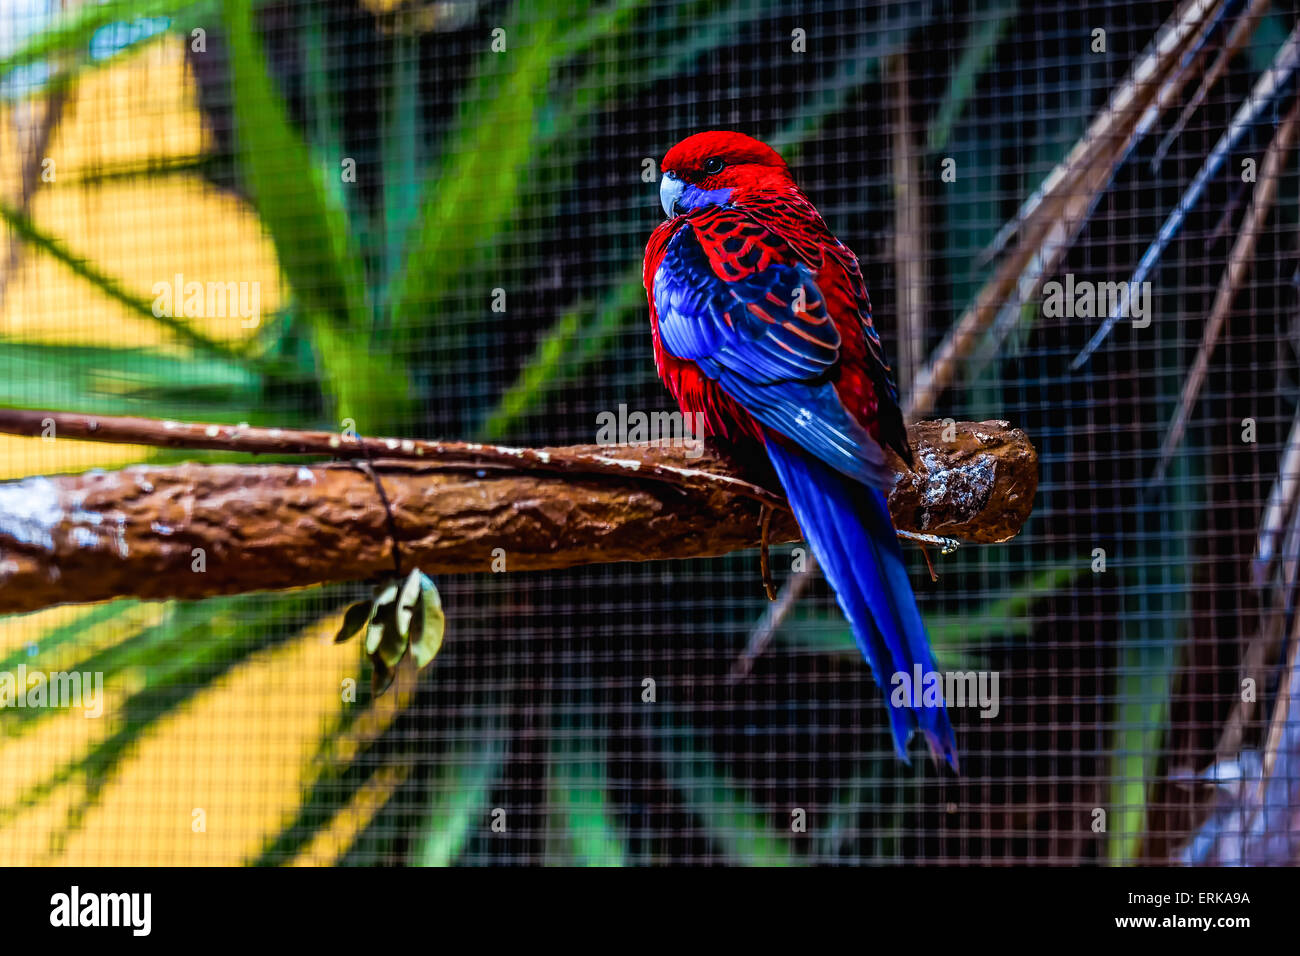 Blue and red parrot siting on wooden perch in zoo - Stock Image